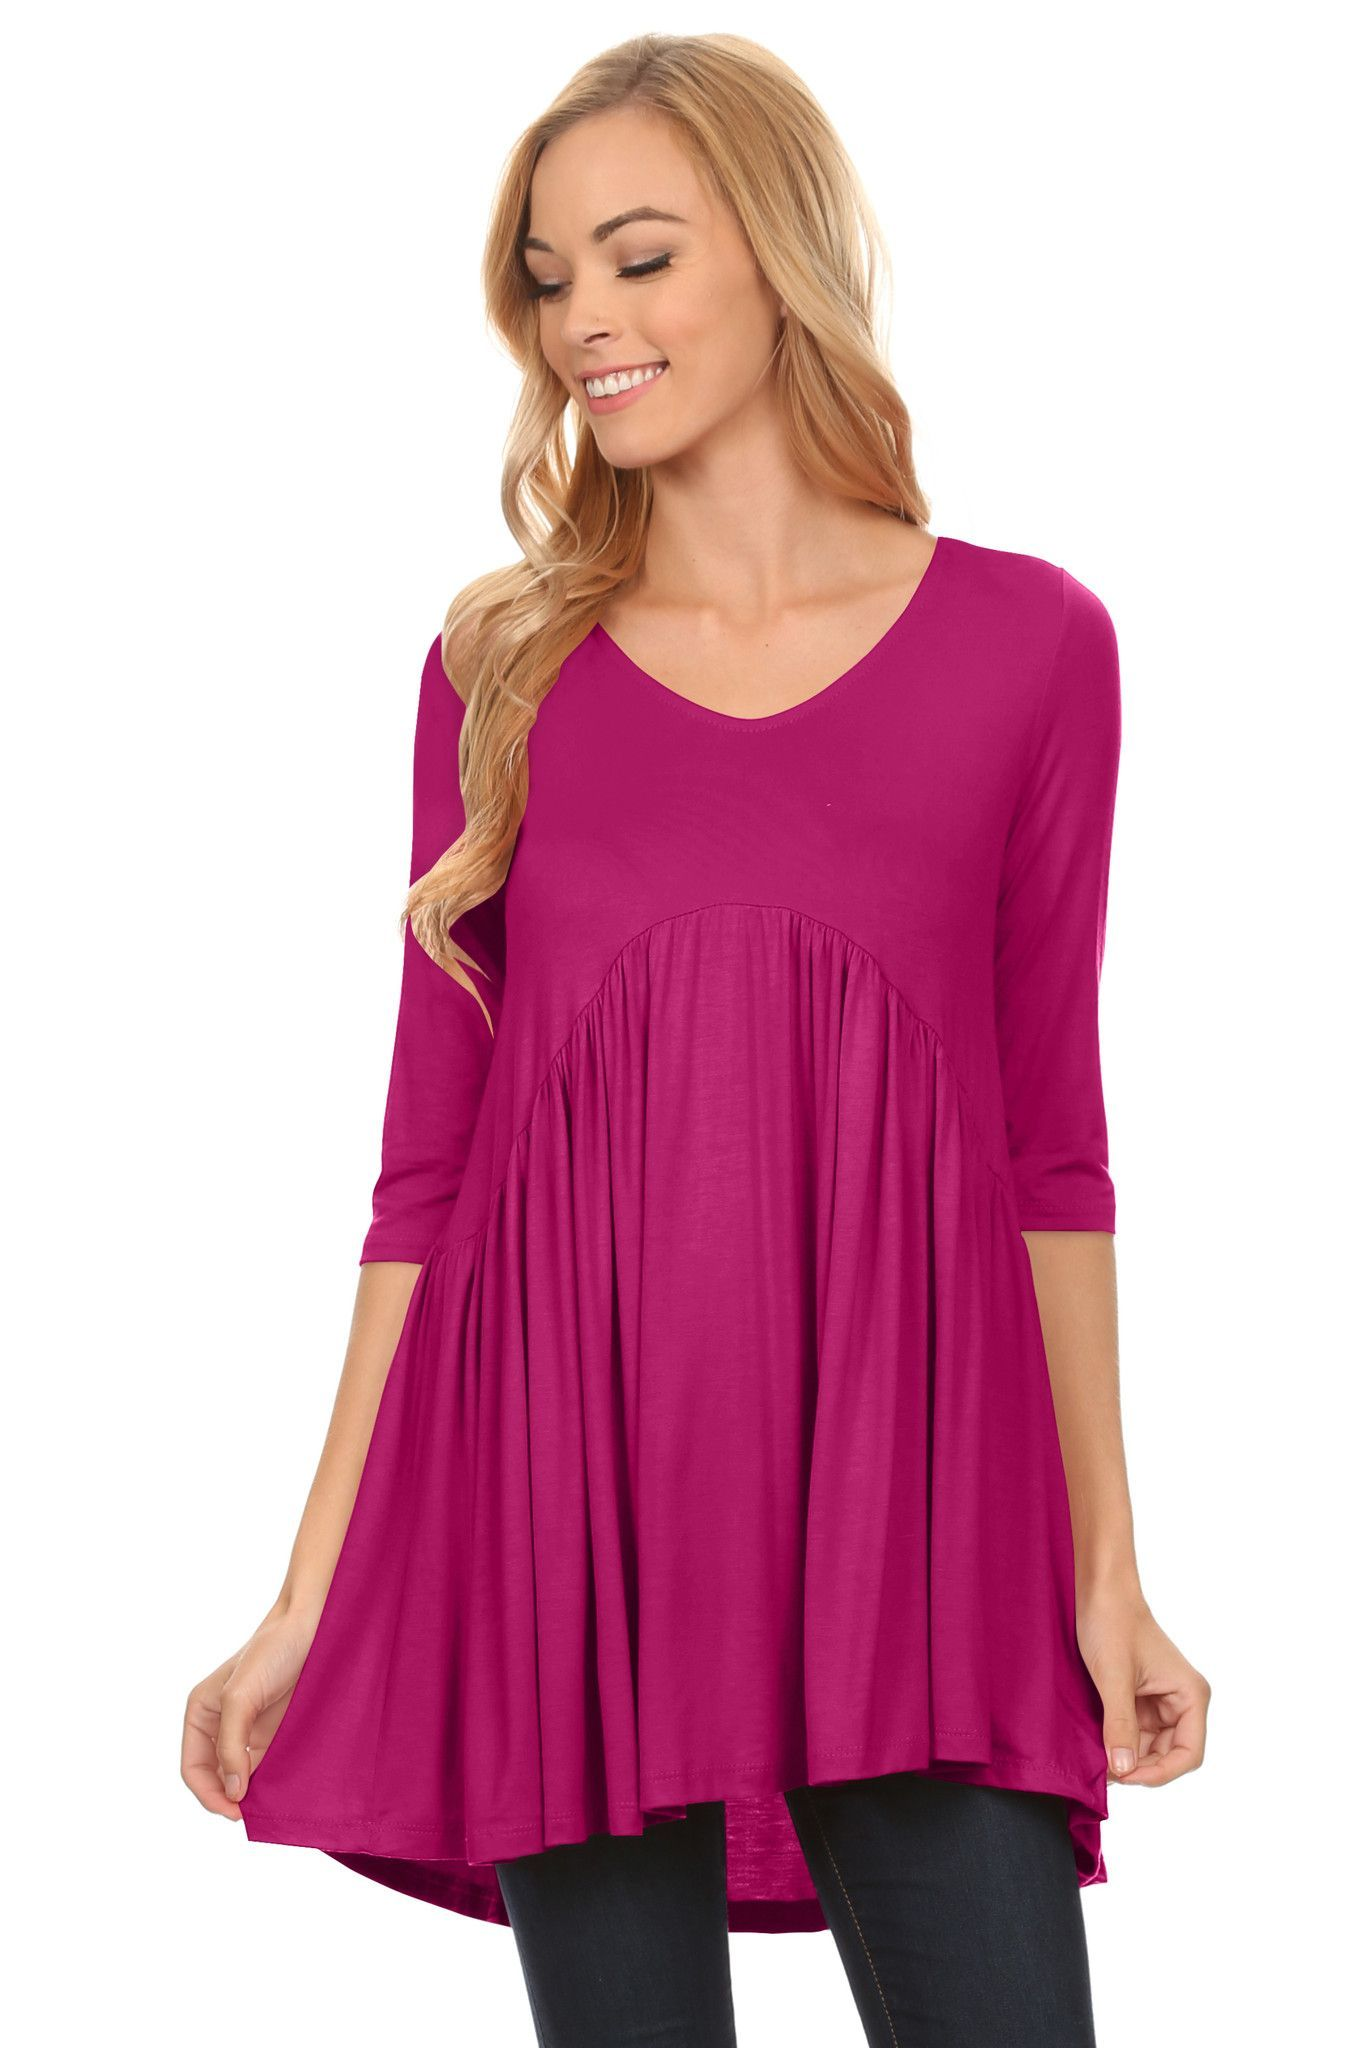 2ed2fb7a50 COMFORT - These Mini Dress Tunics for Women is composed of 95% Rayon